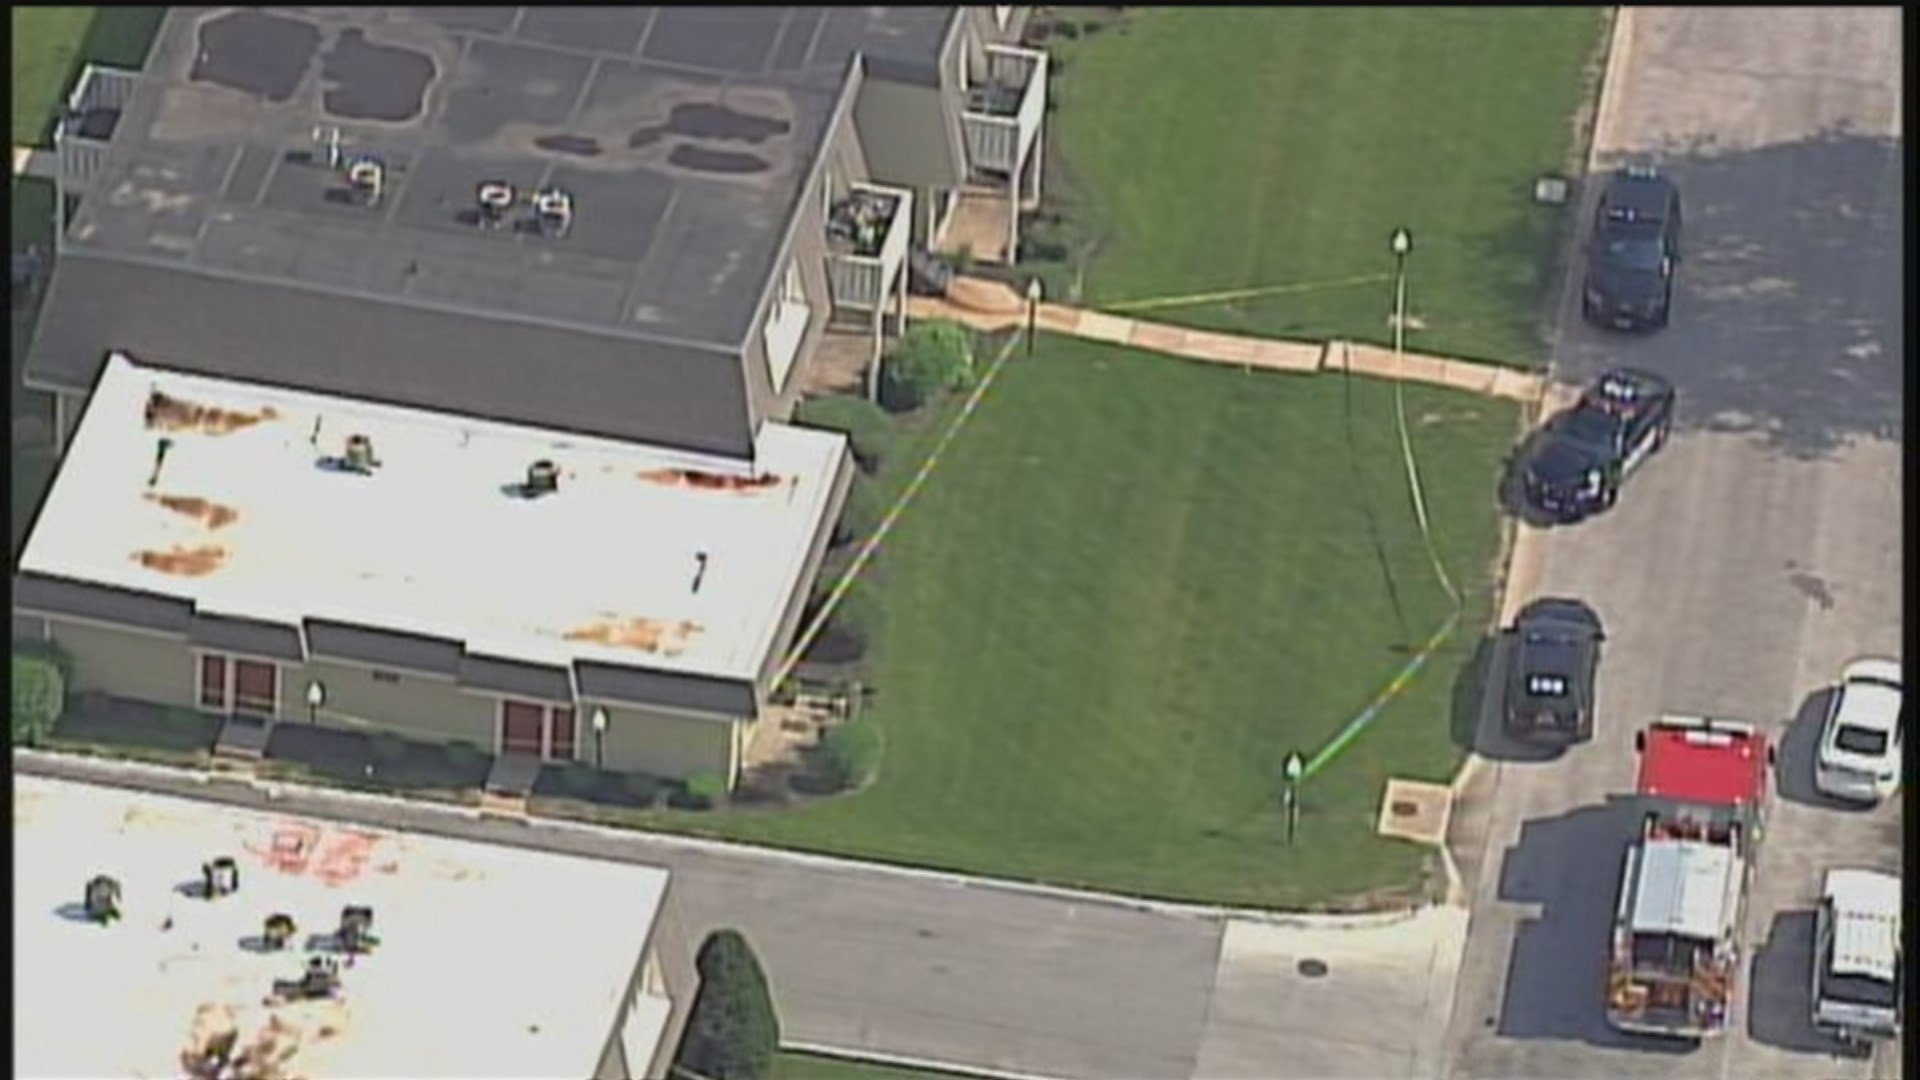 The shooting happened about 4:15 p.m. in the 11900 block of Holiday Drive on May 29. (KCTV5)